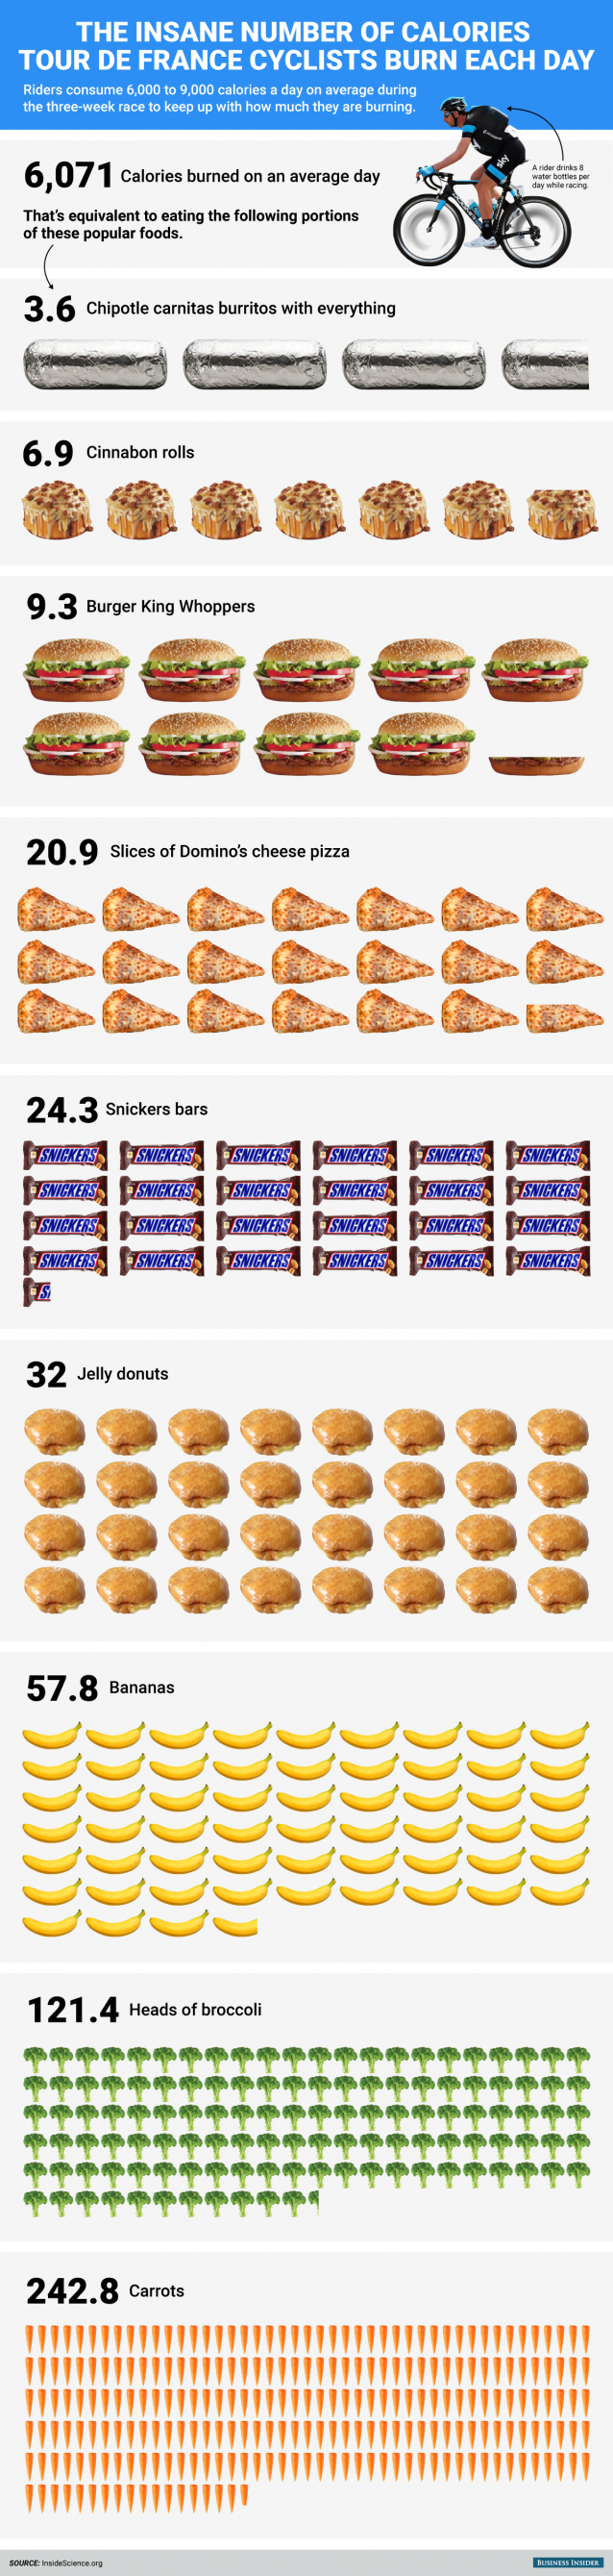 bi_graphics_tour-de-france-calories